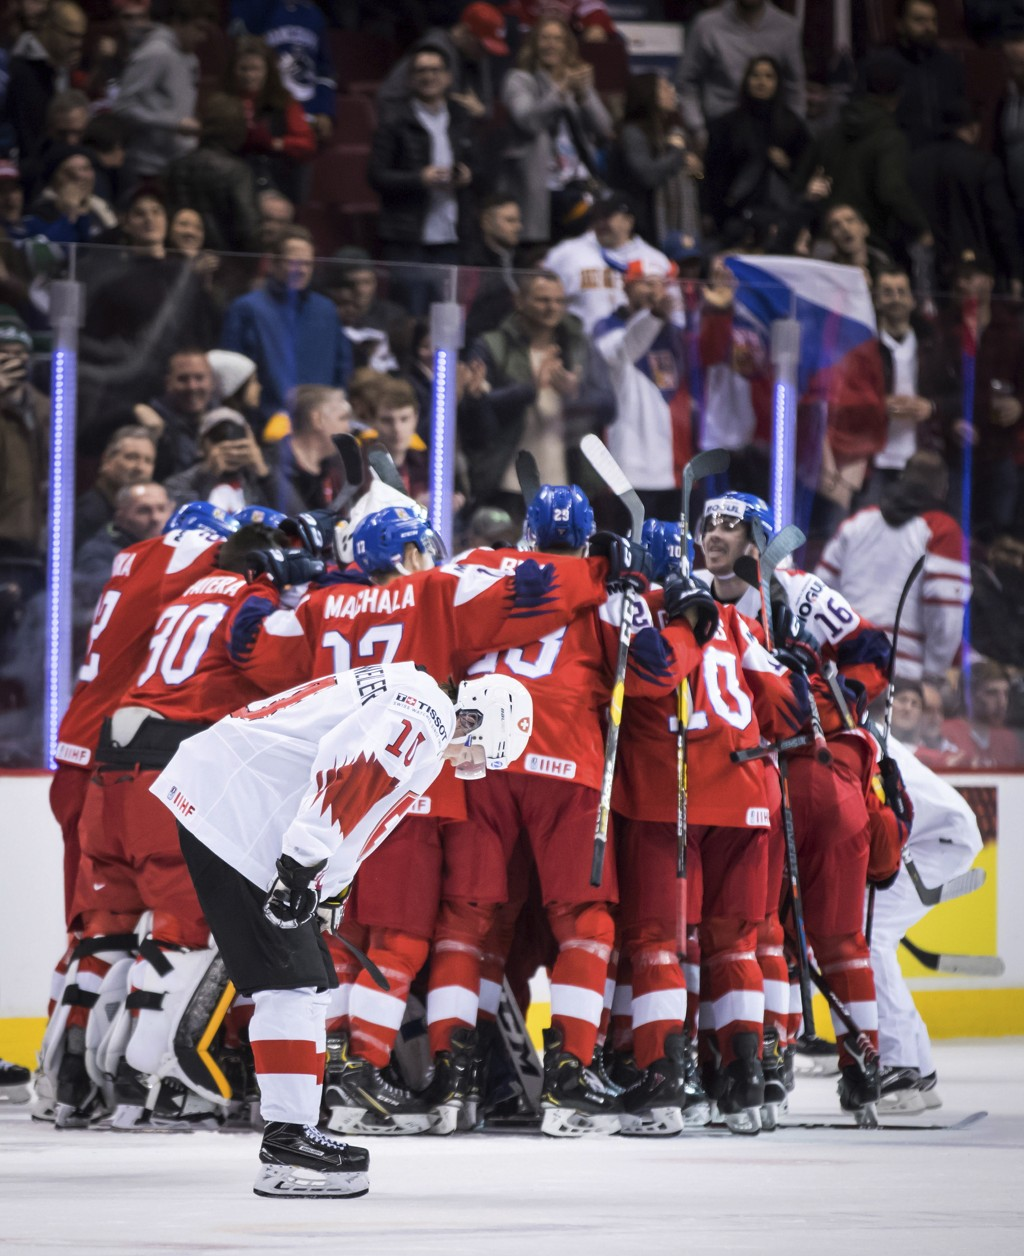 Switzerland's Yannick Bruschweiler (10) skates past as Czech Republic players celebrate their overtime win in a world junior men's hockey championship